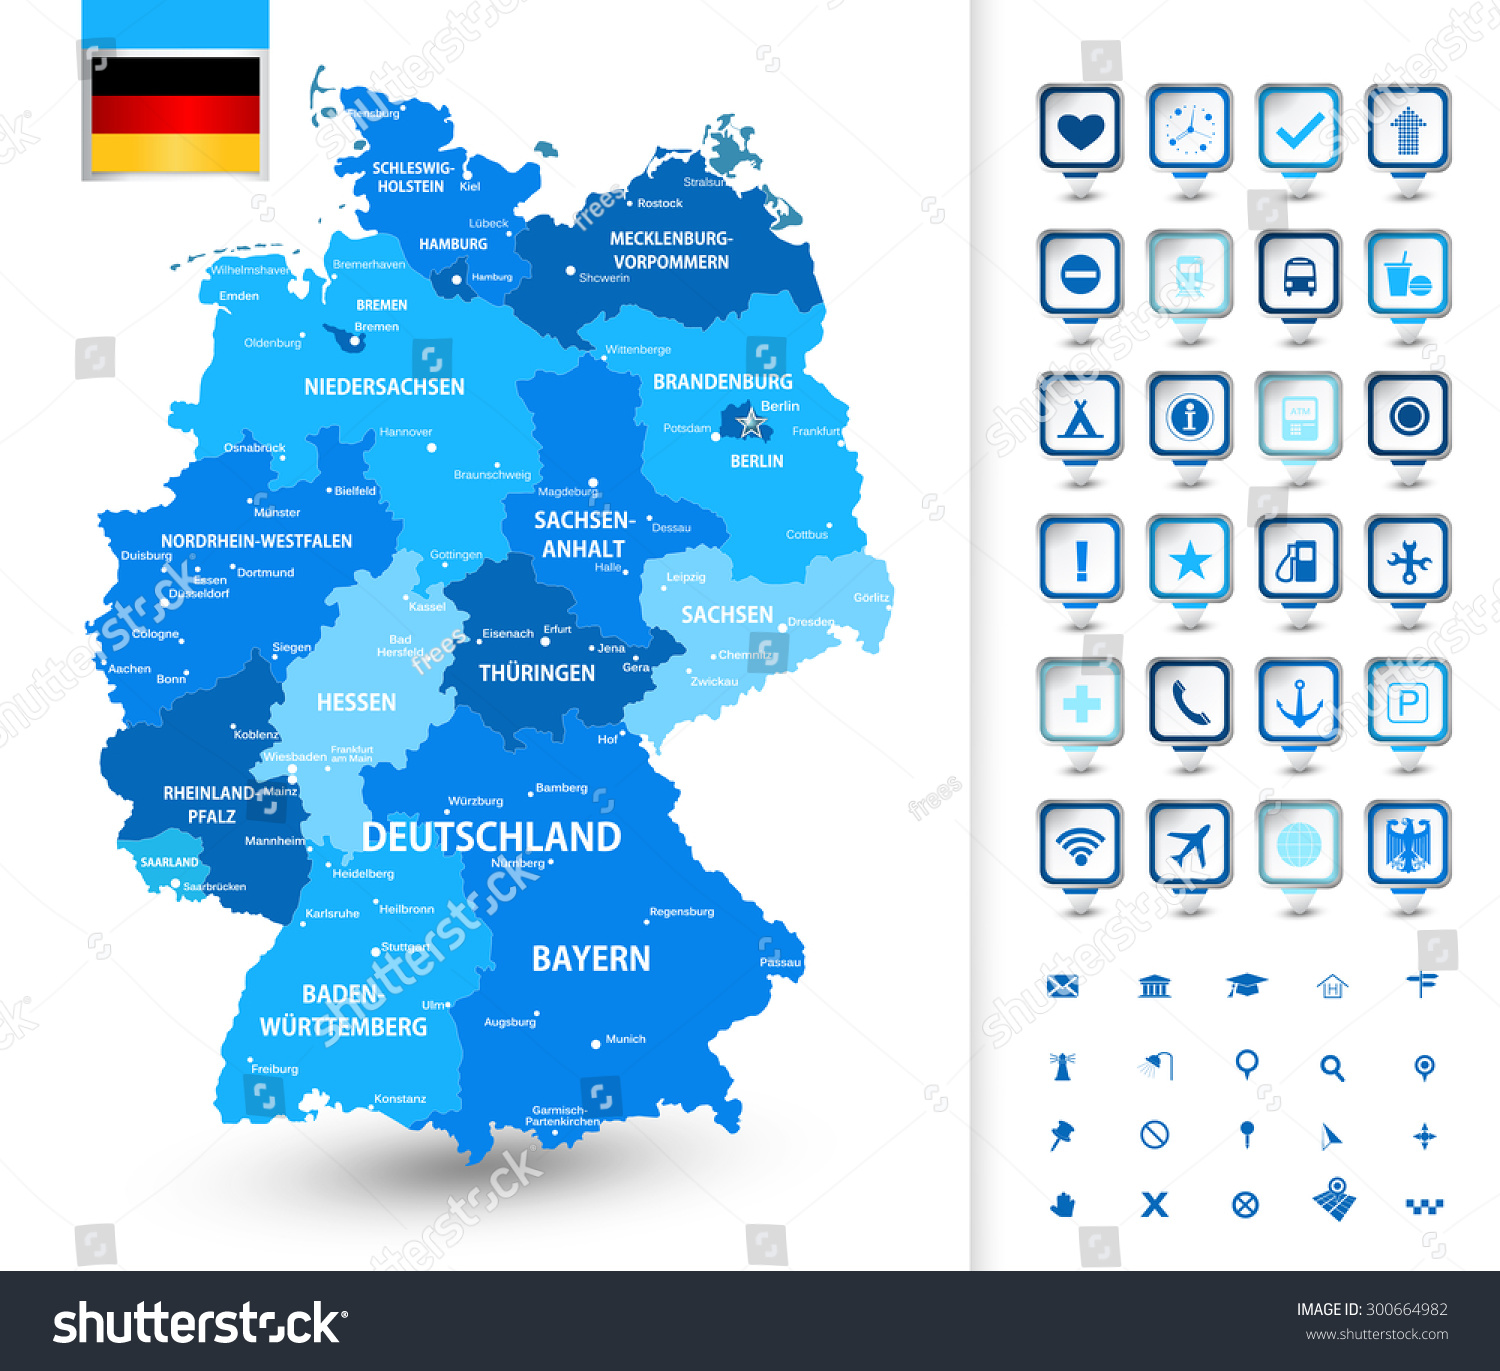 Highly Detailed Map Of Germany With Administrative Divisions – Map of German Cities and States